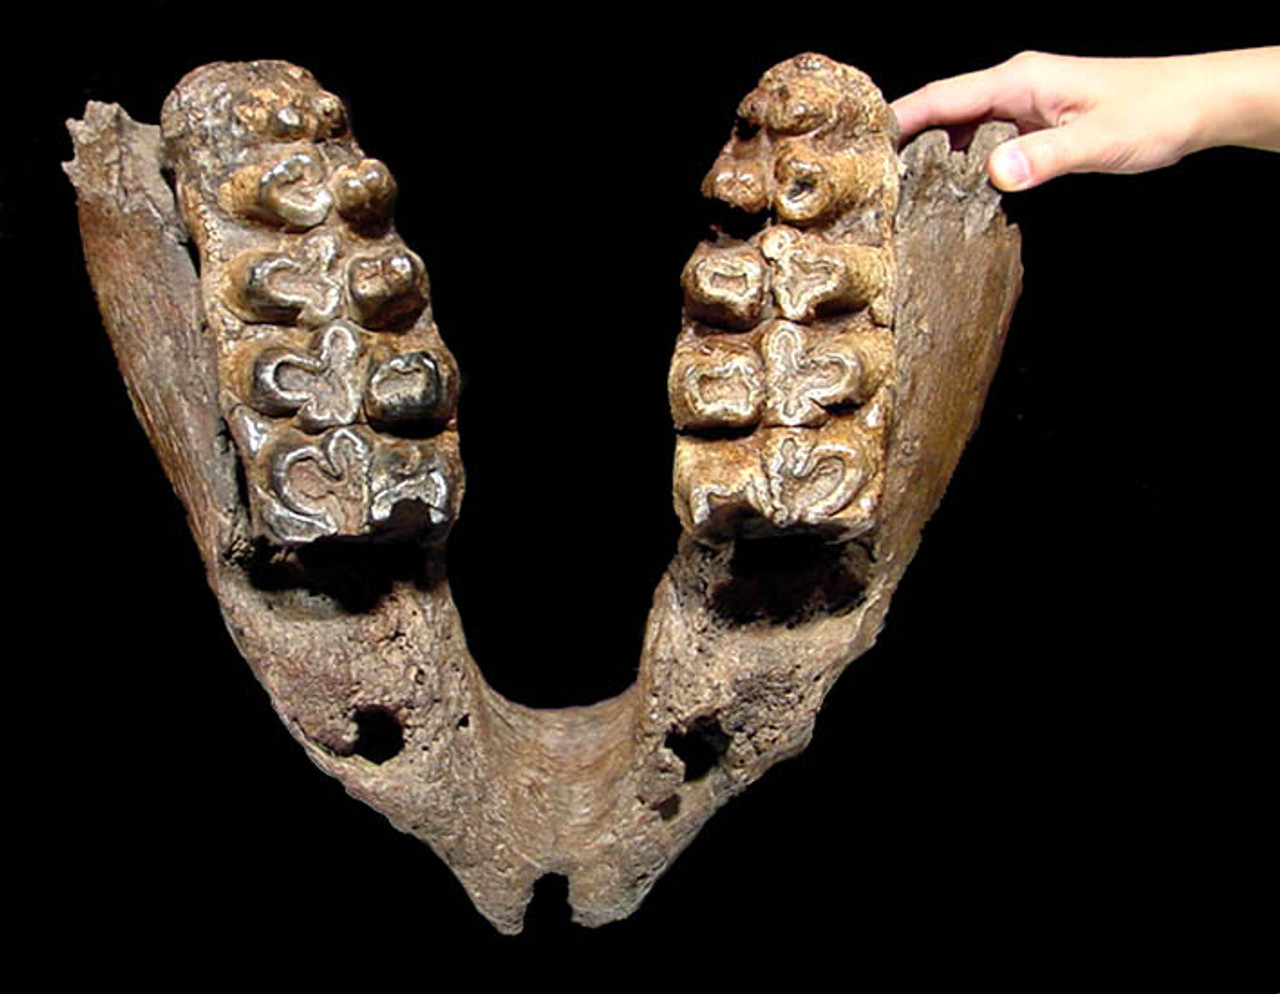 LM60-001  - RARE  ELDERLY PLIOCENE GOMPHOTHERE JAW WITH ORIGINAL FINAL MOLAR SET PRIOR TO DEATH